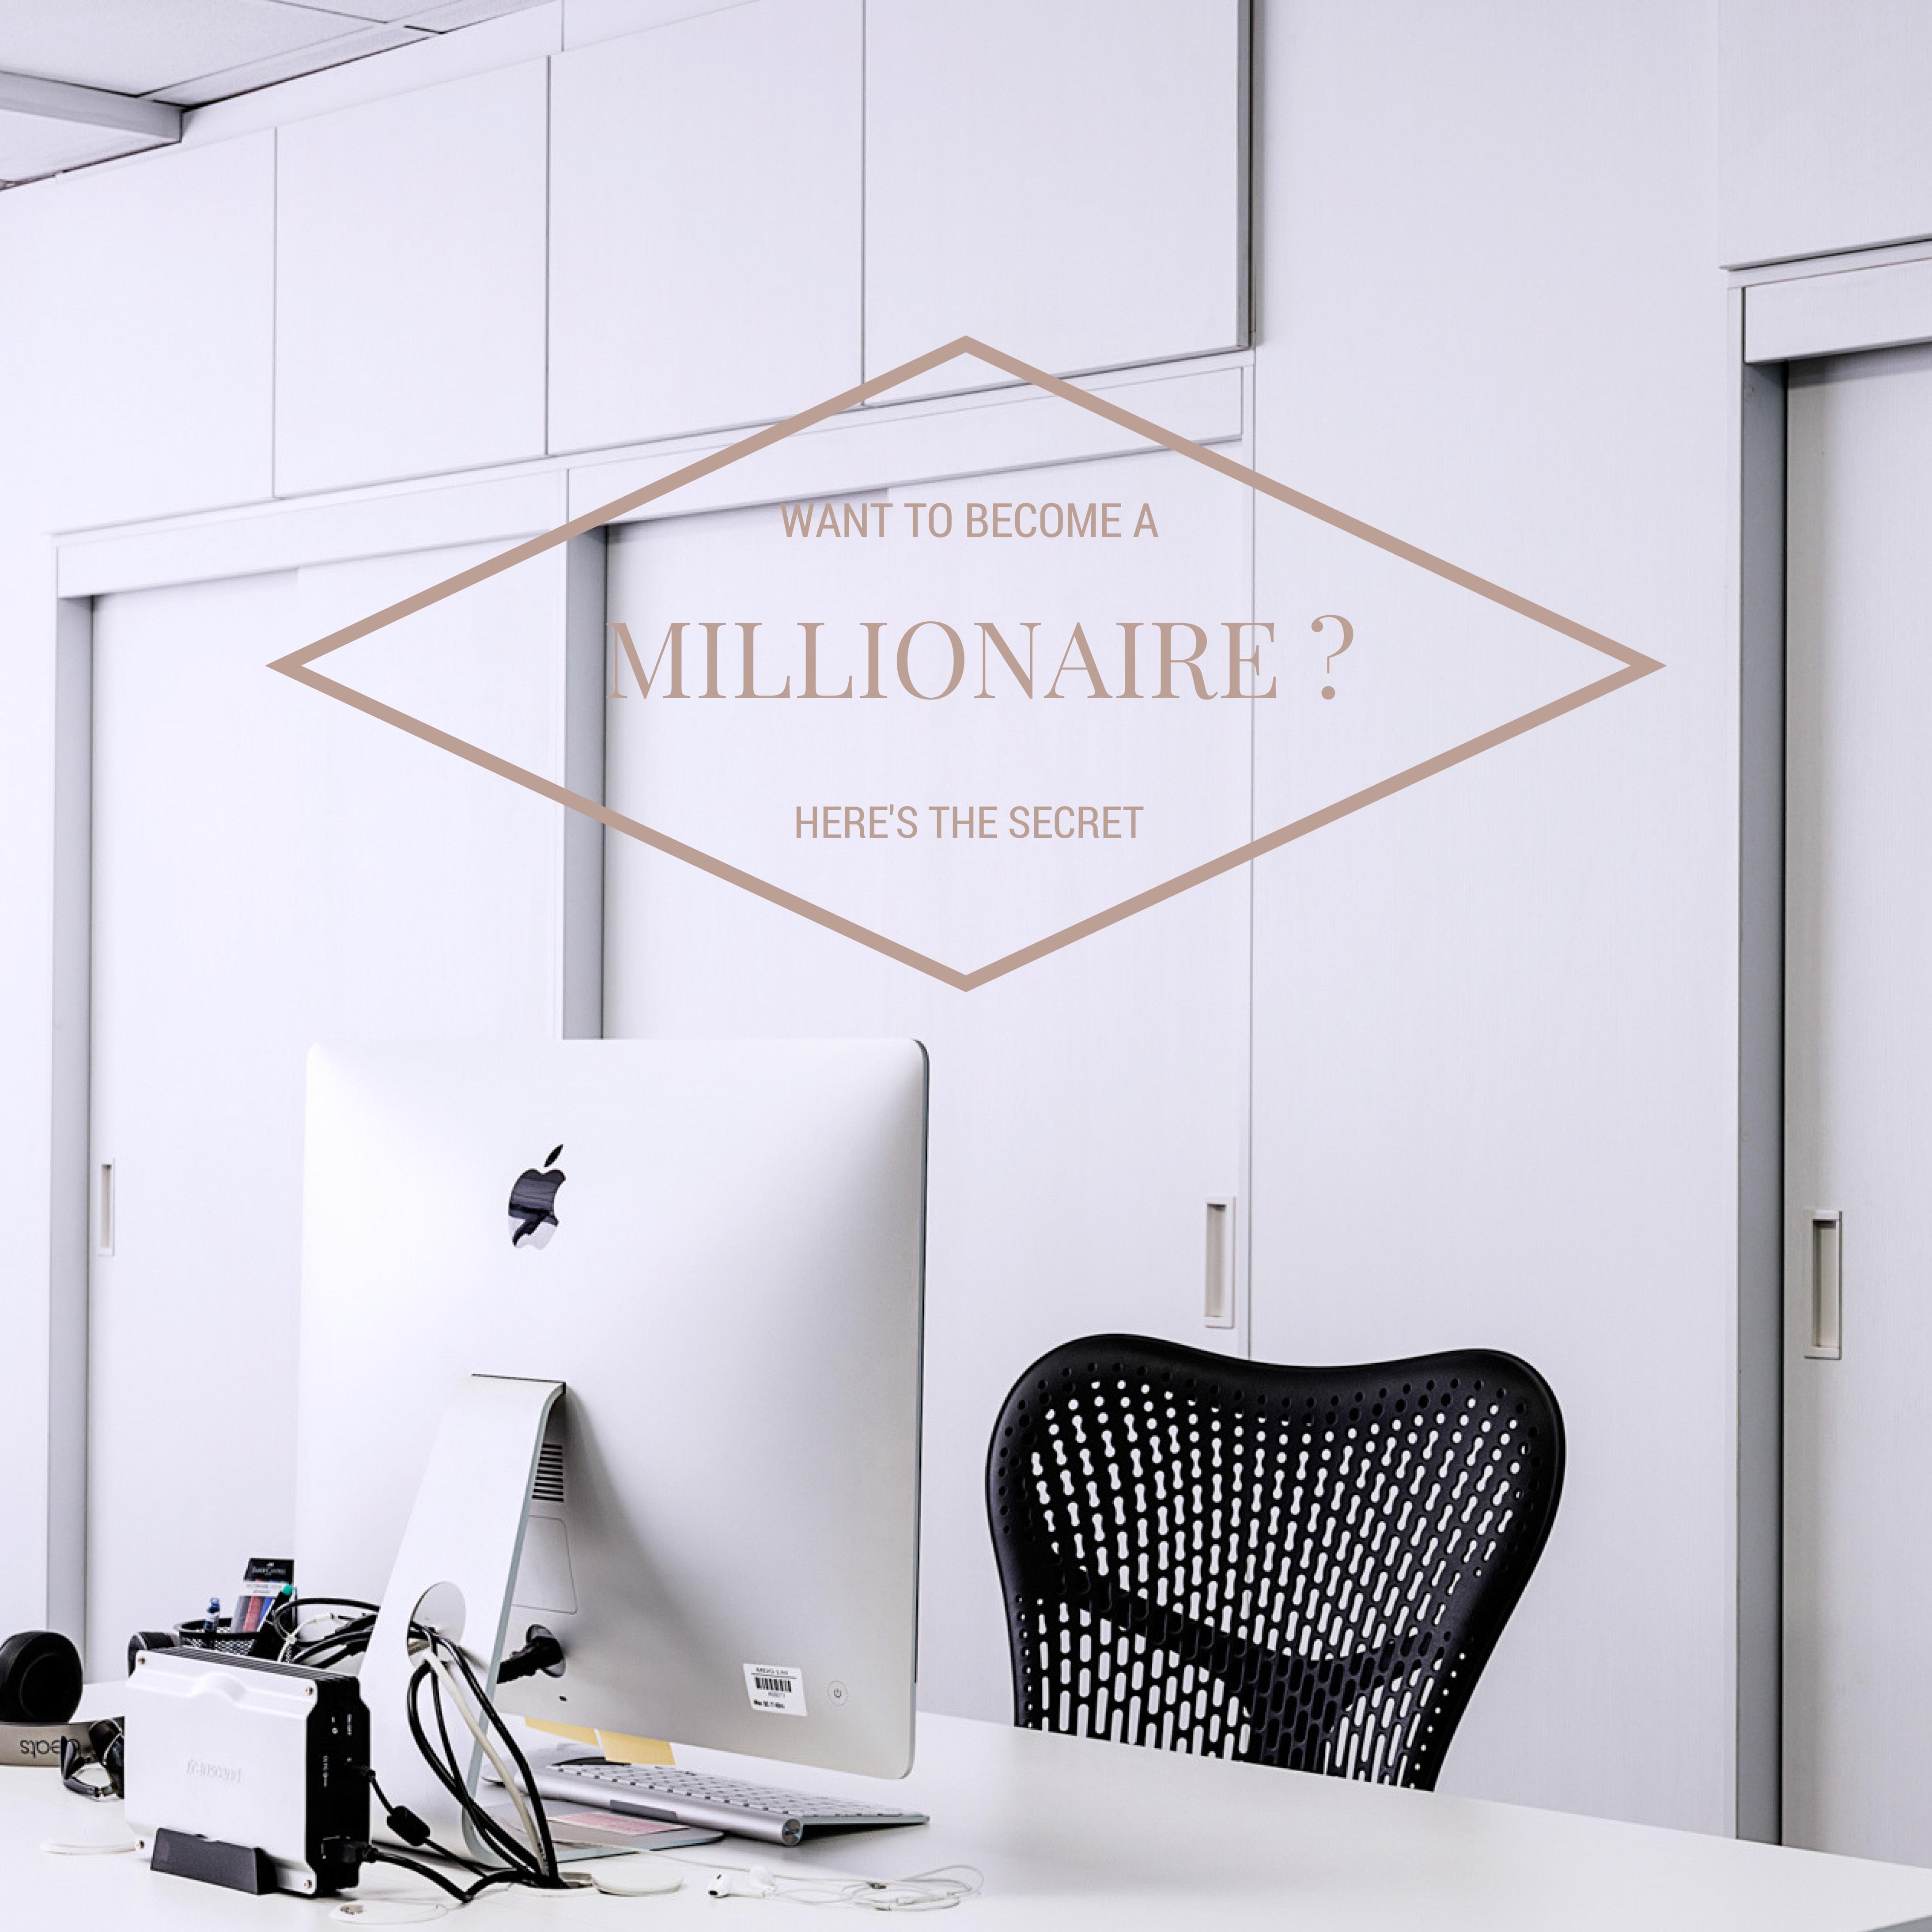 The Secret Element to Becoming a Millionaire – Hire, Hire, Hire